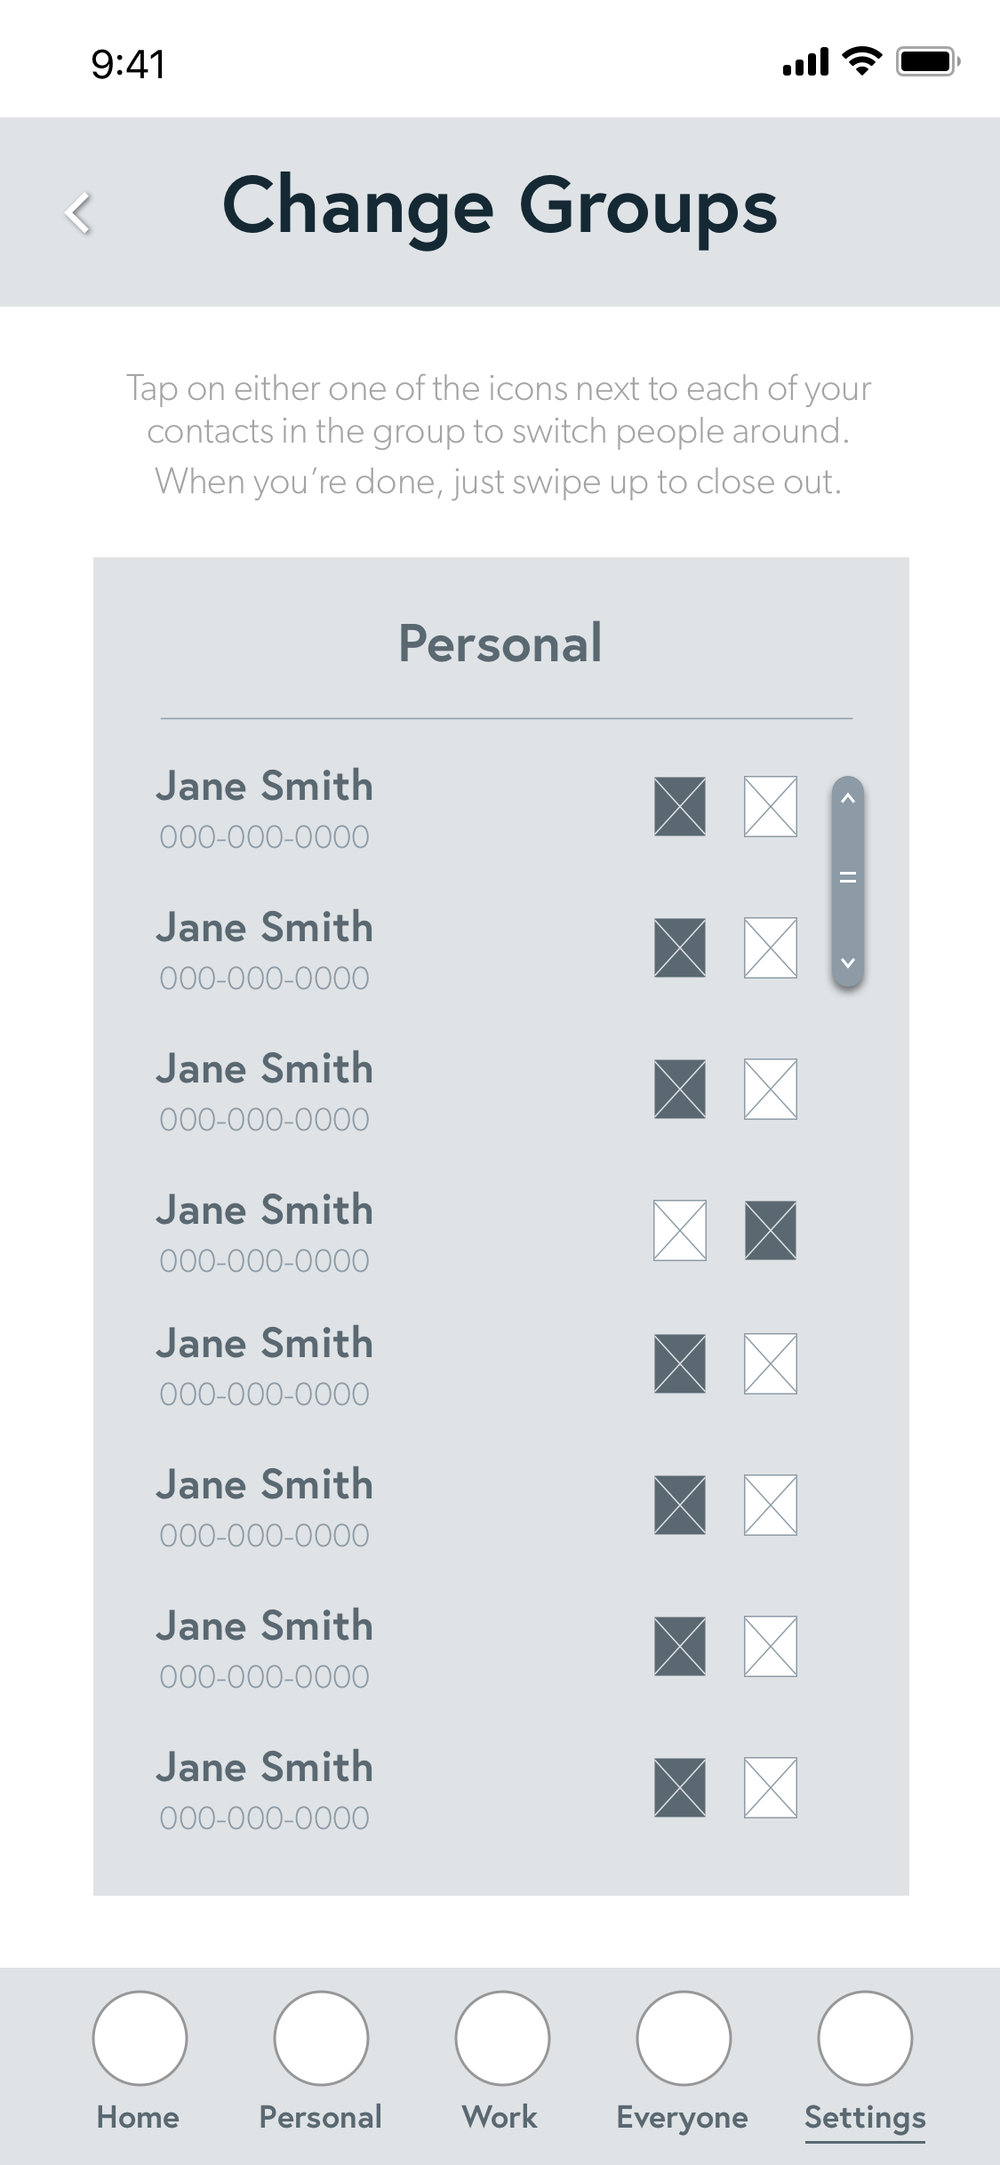 An example of how a user can switch a contact into another group